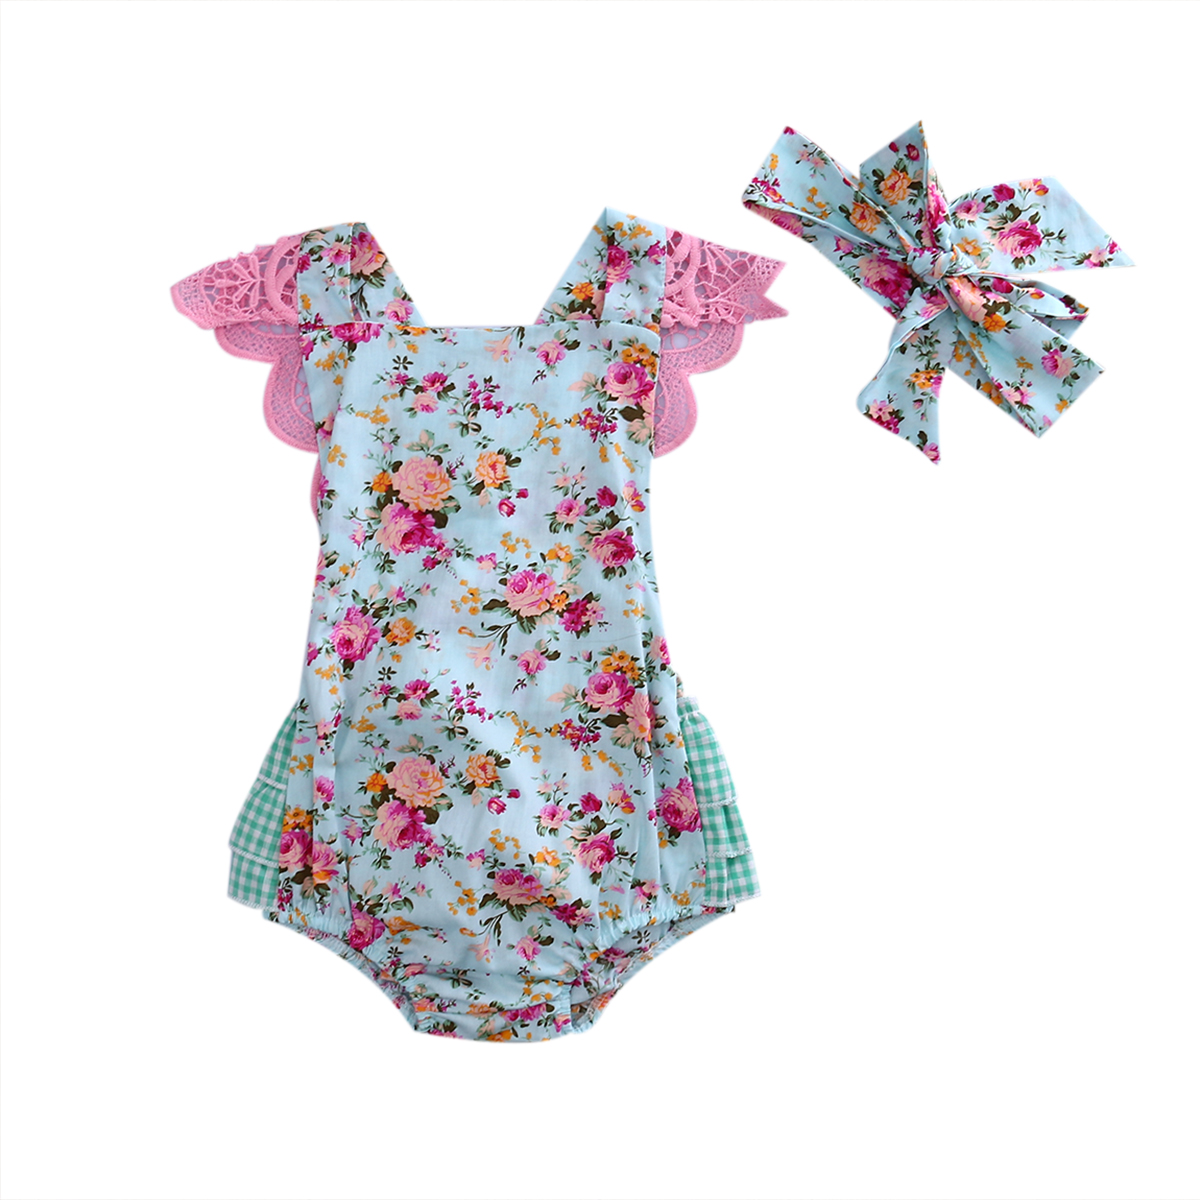 2437e614f7ad Newborn Infant Kids Baby Girls Lace Floral Romper Jumpsuit Playsuit Outfits  Summer Baby Girl Clothing Handband 2pcs